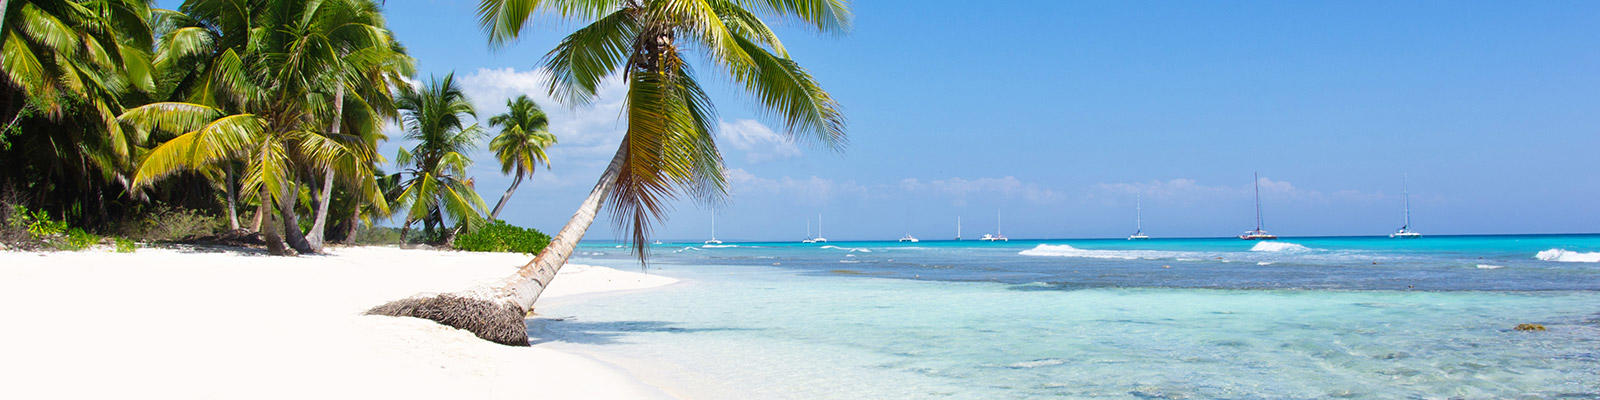 Budget friendly holiday in Mauritius